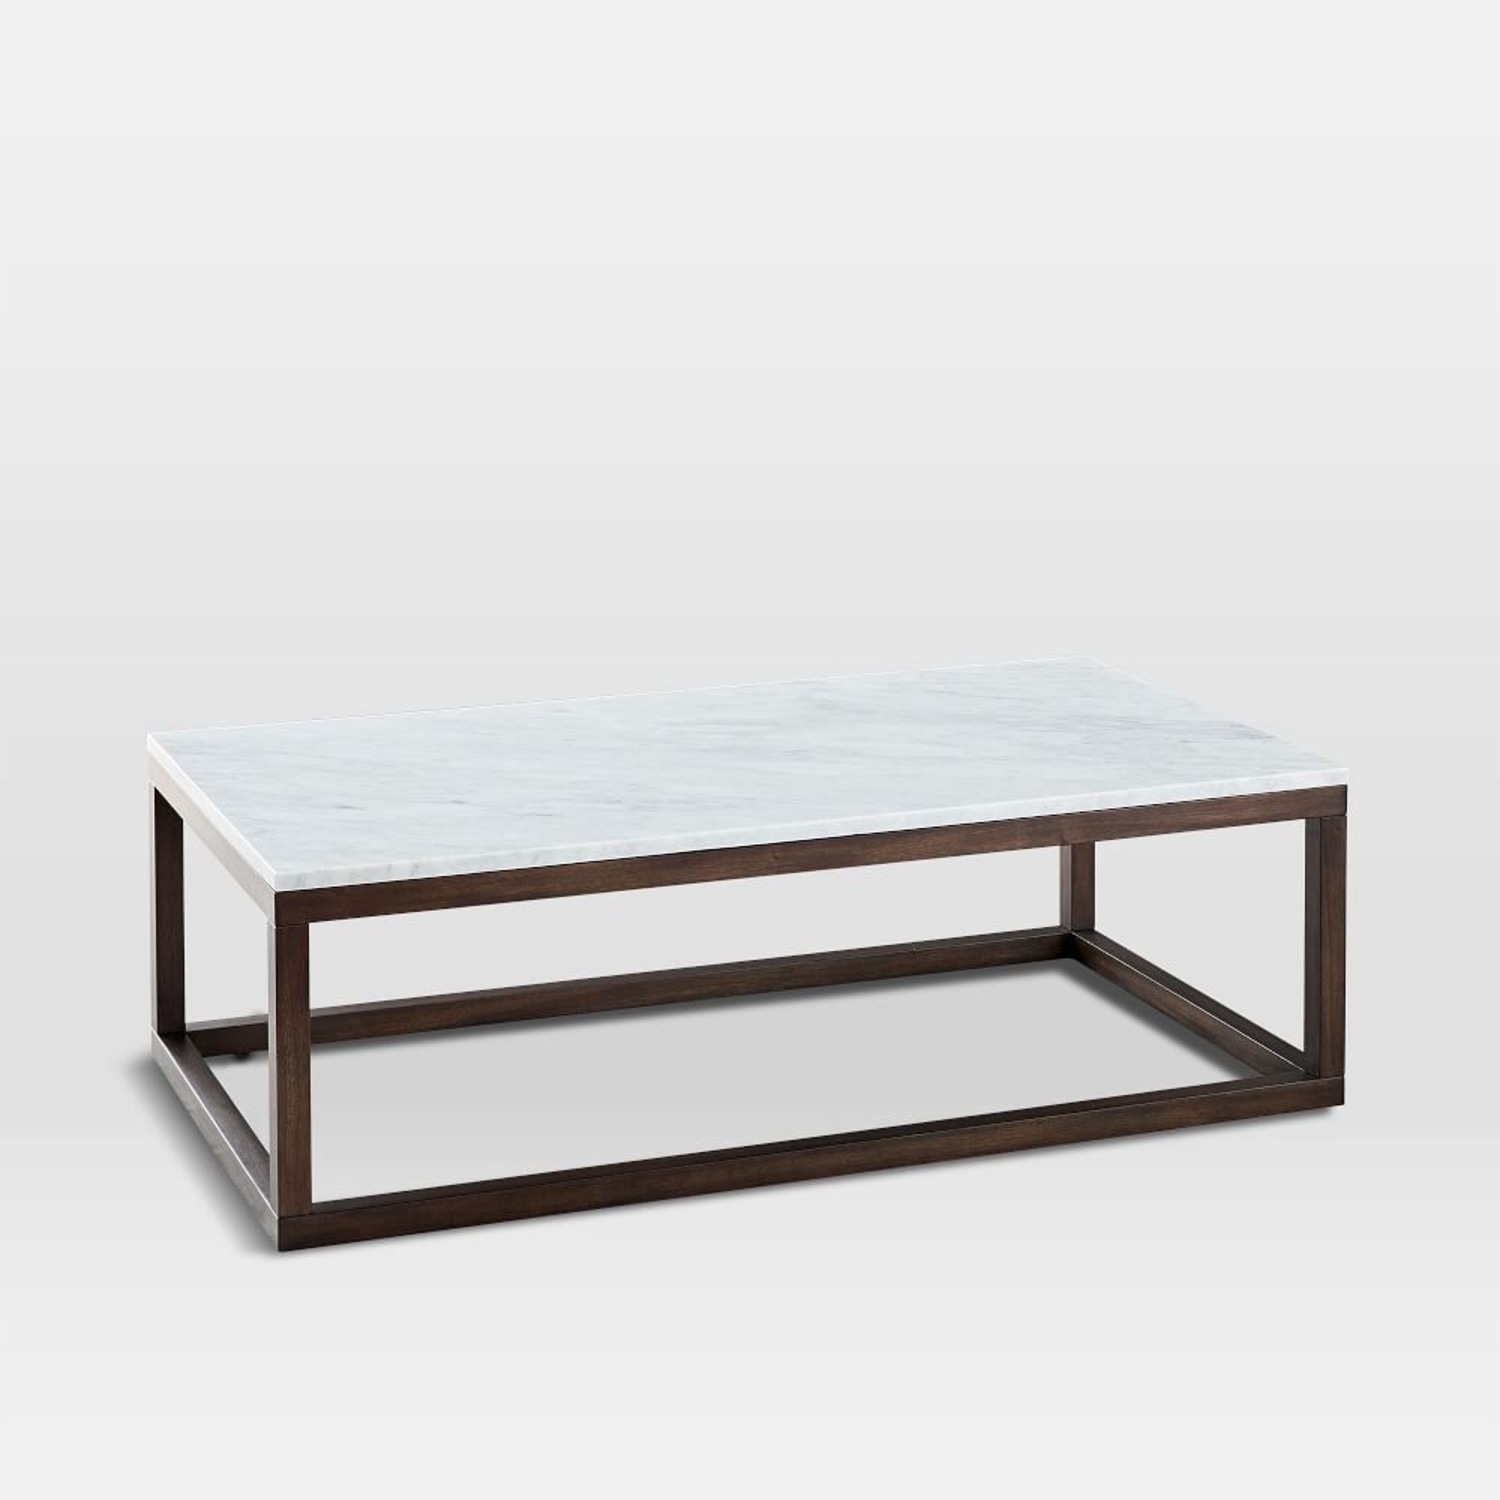 West Elm wood frame coffee table